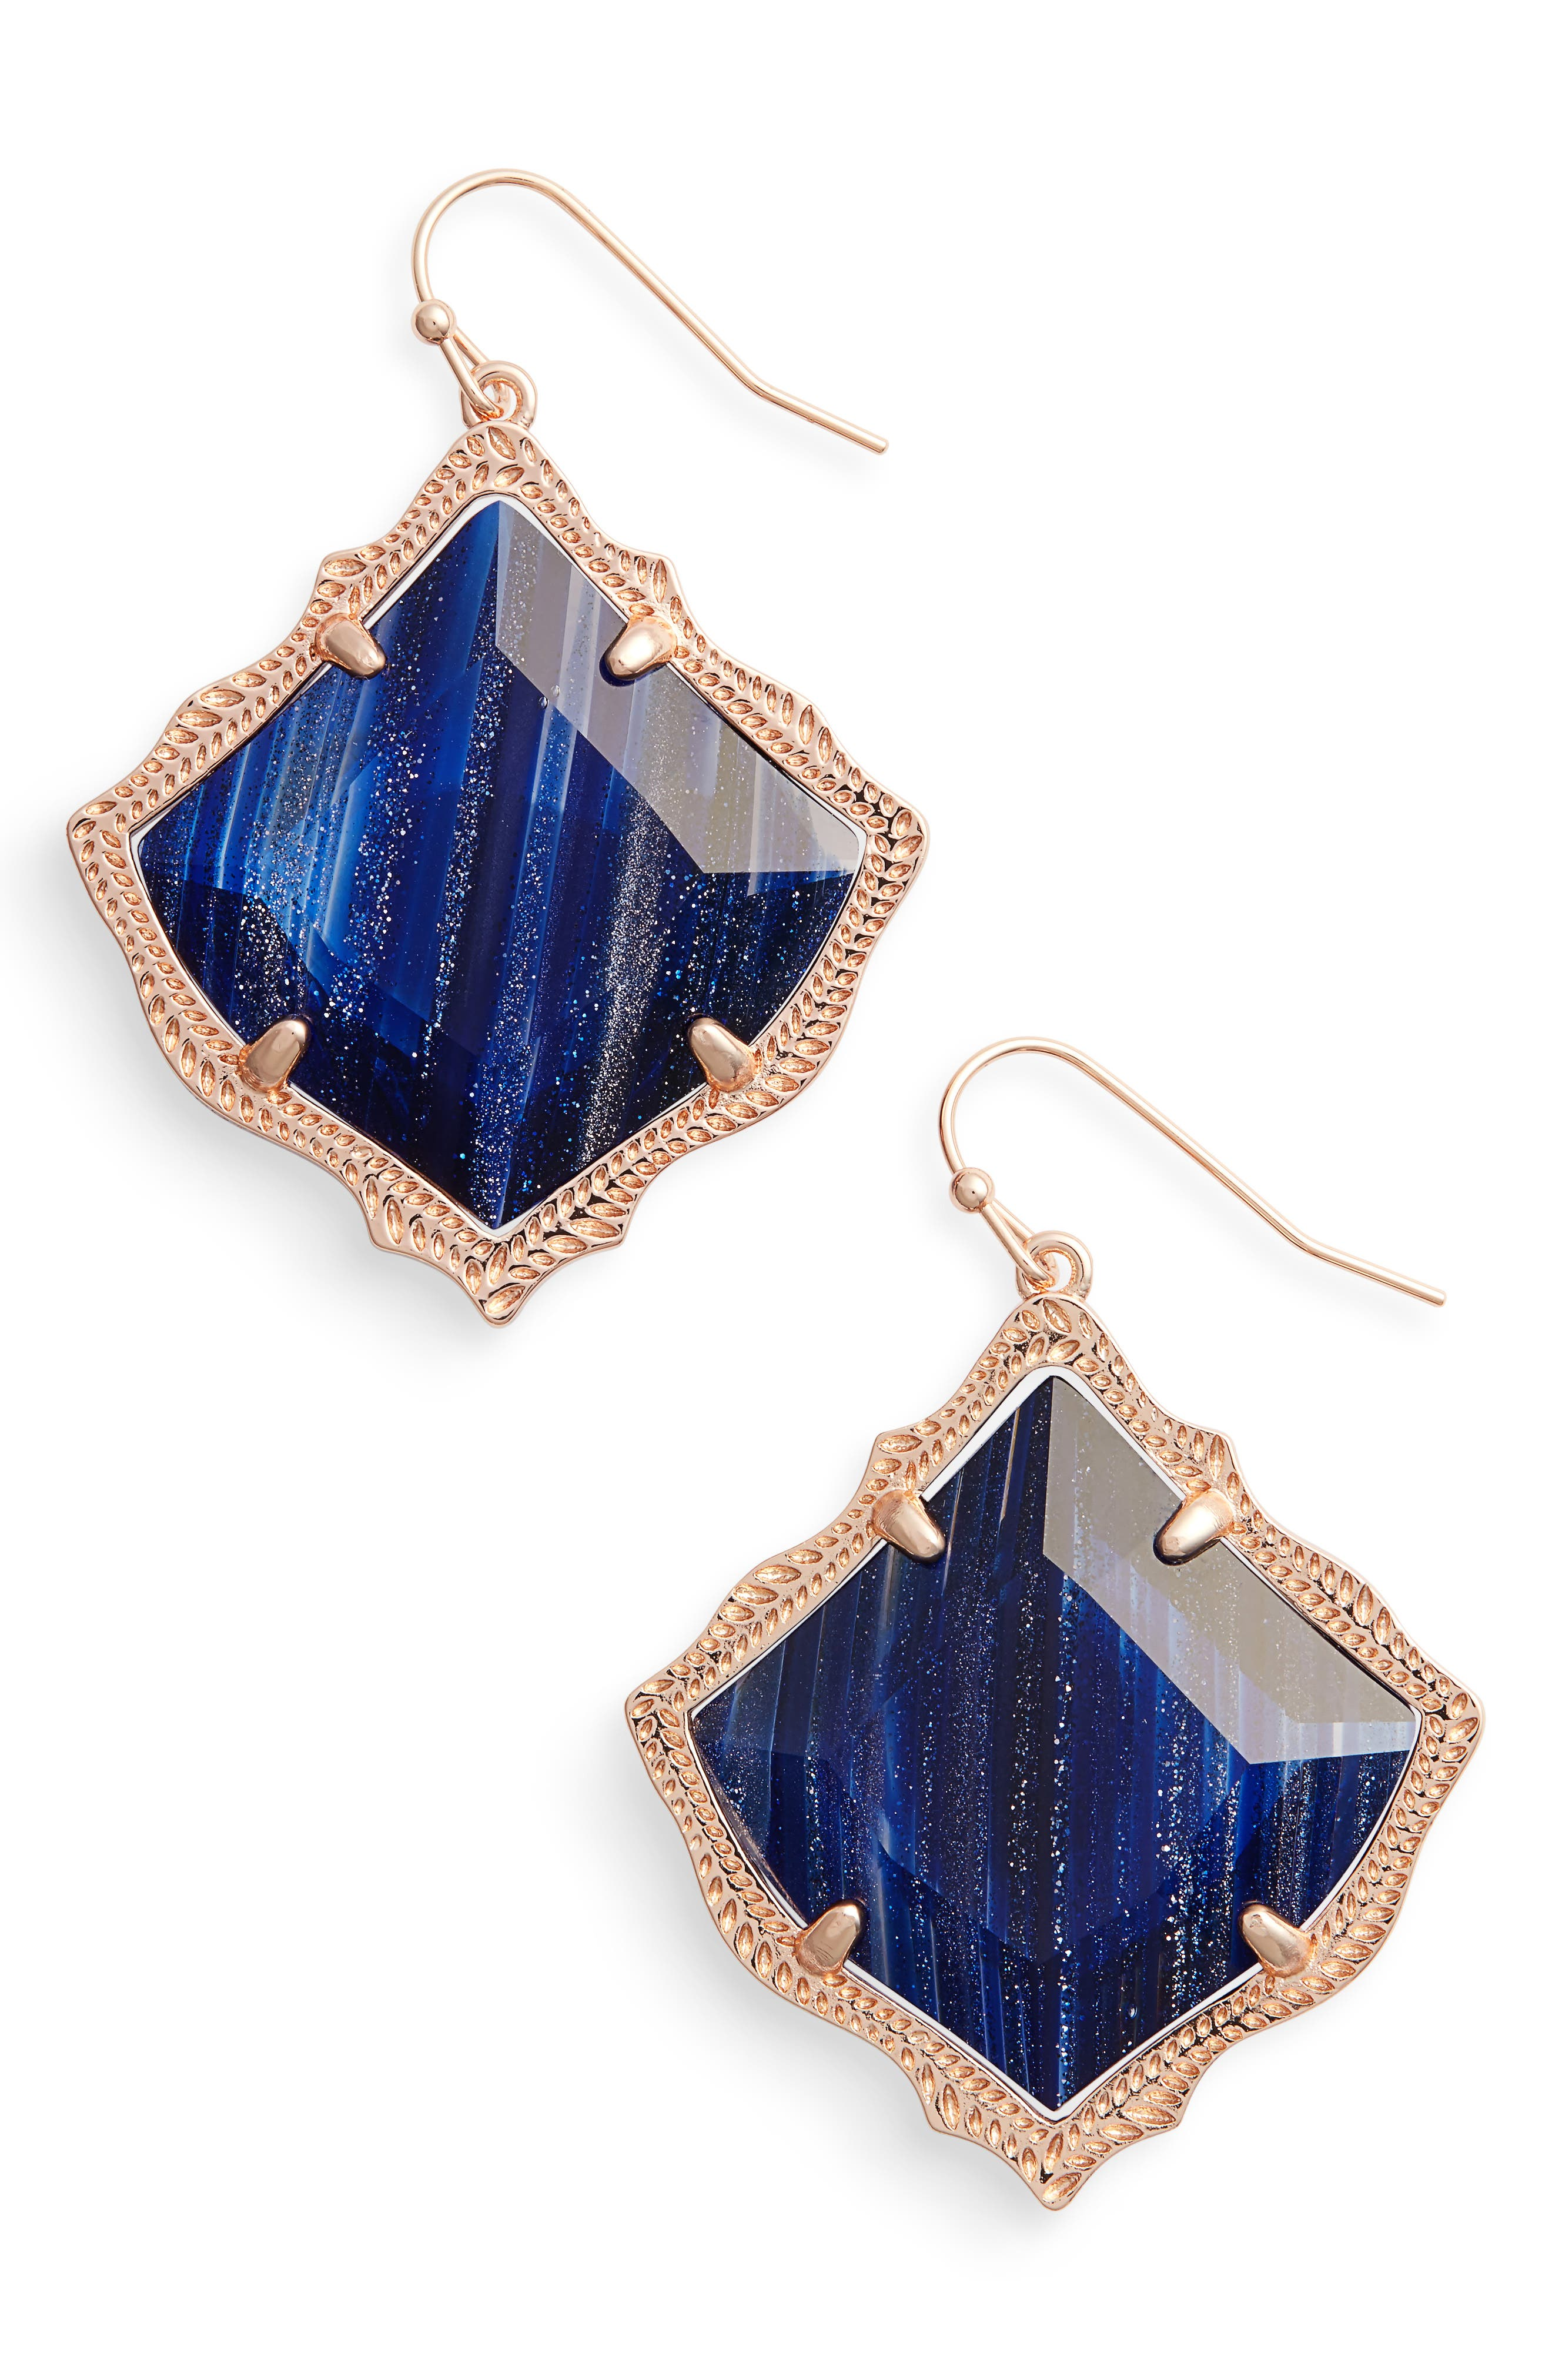 Kirsten Drop Earrings,                             Main thumbnail 1, color,                             Navy Dusted Glass/ Rose Gold